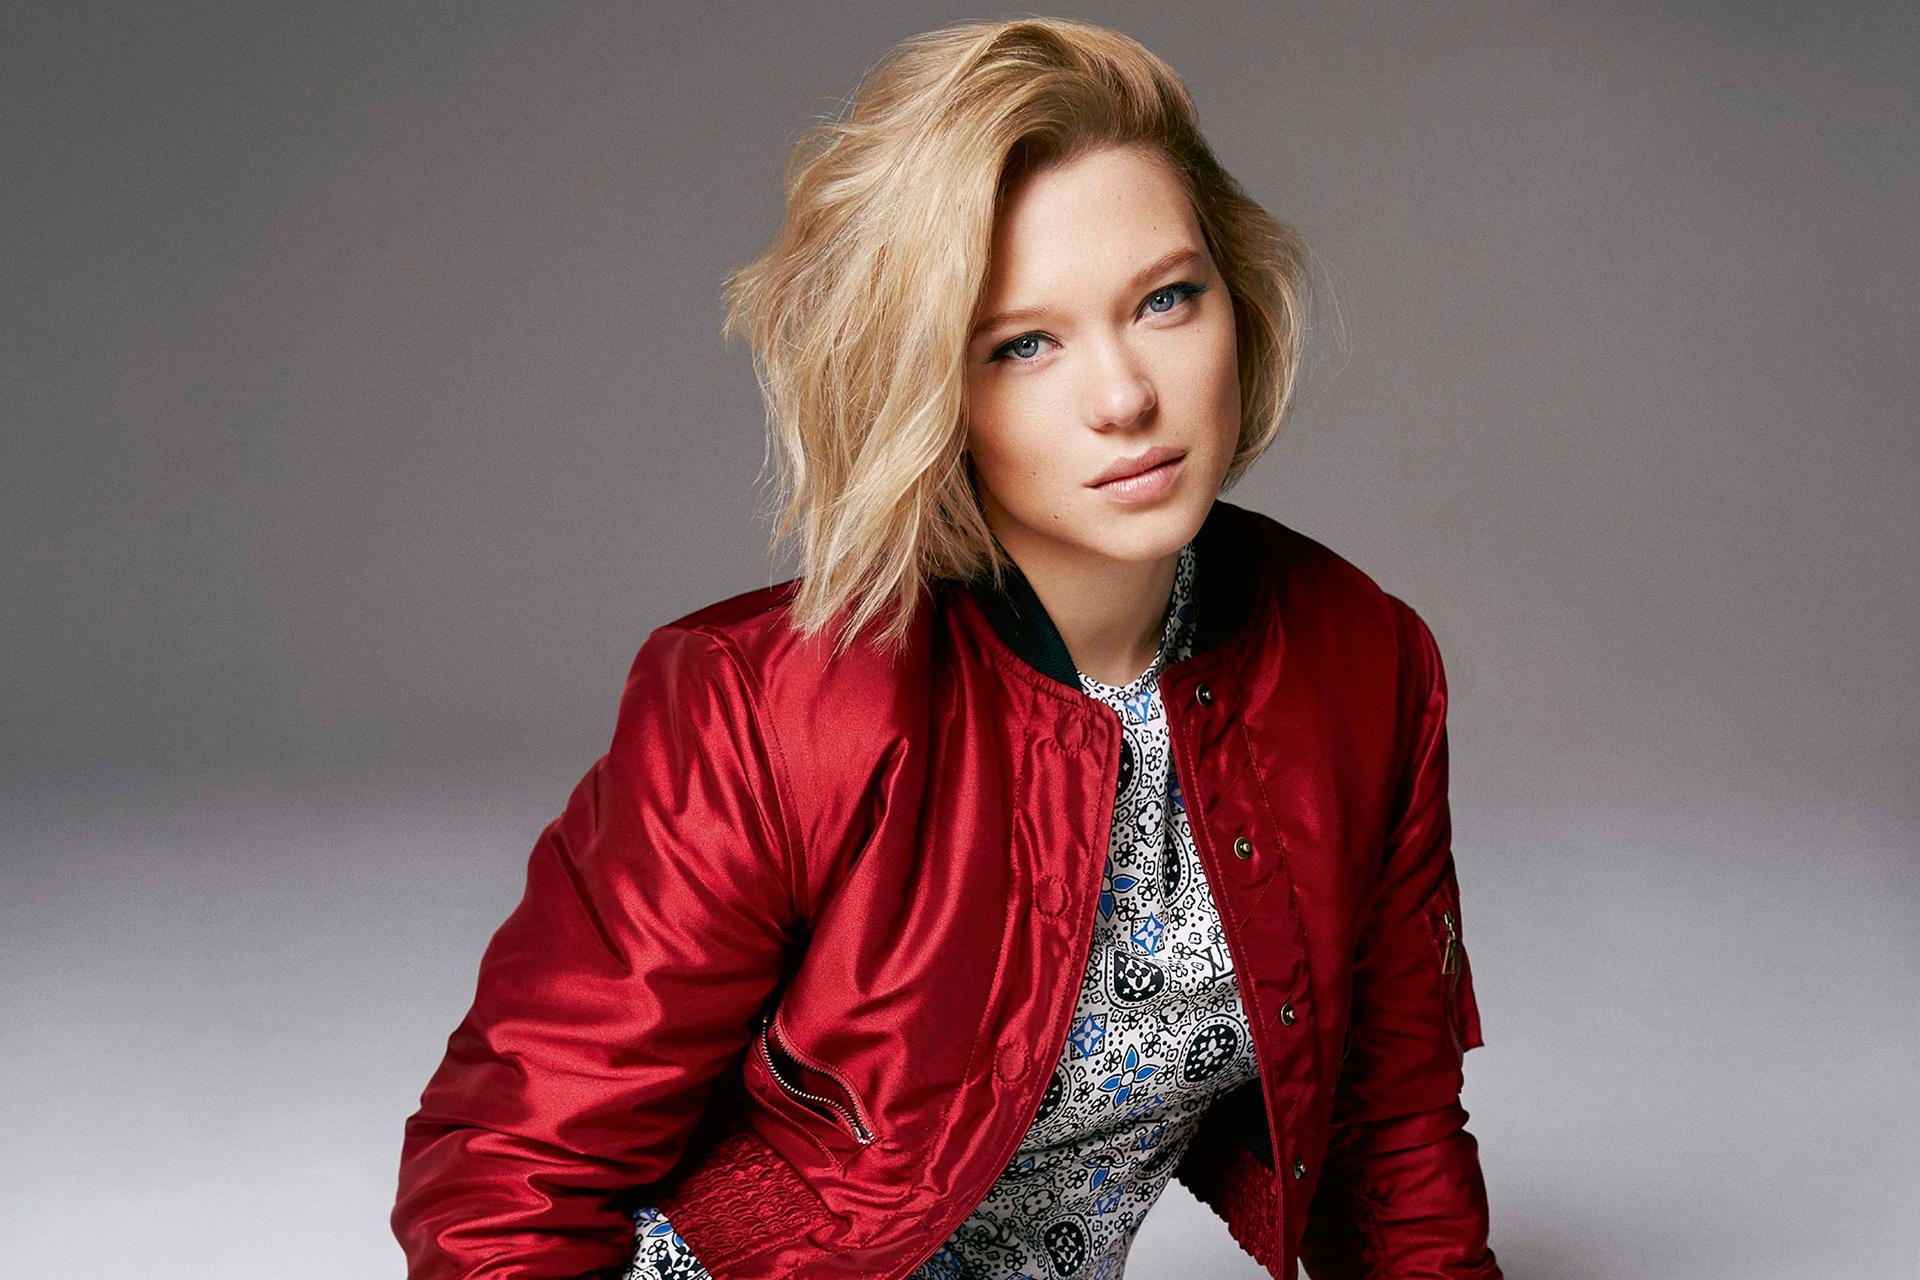 Léa Seydoux Wallpapers, Pictures, Images